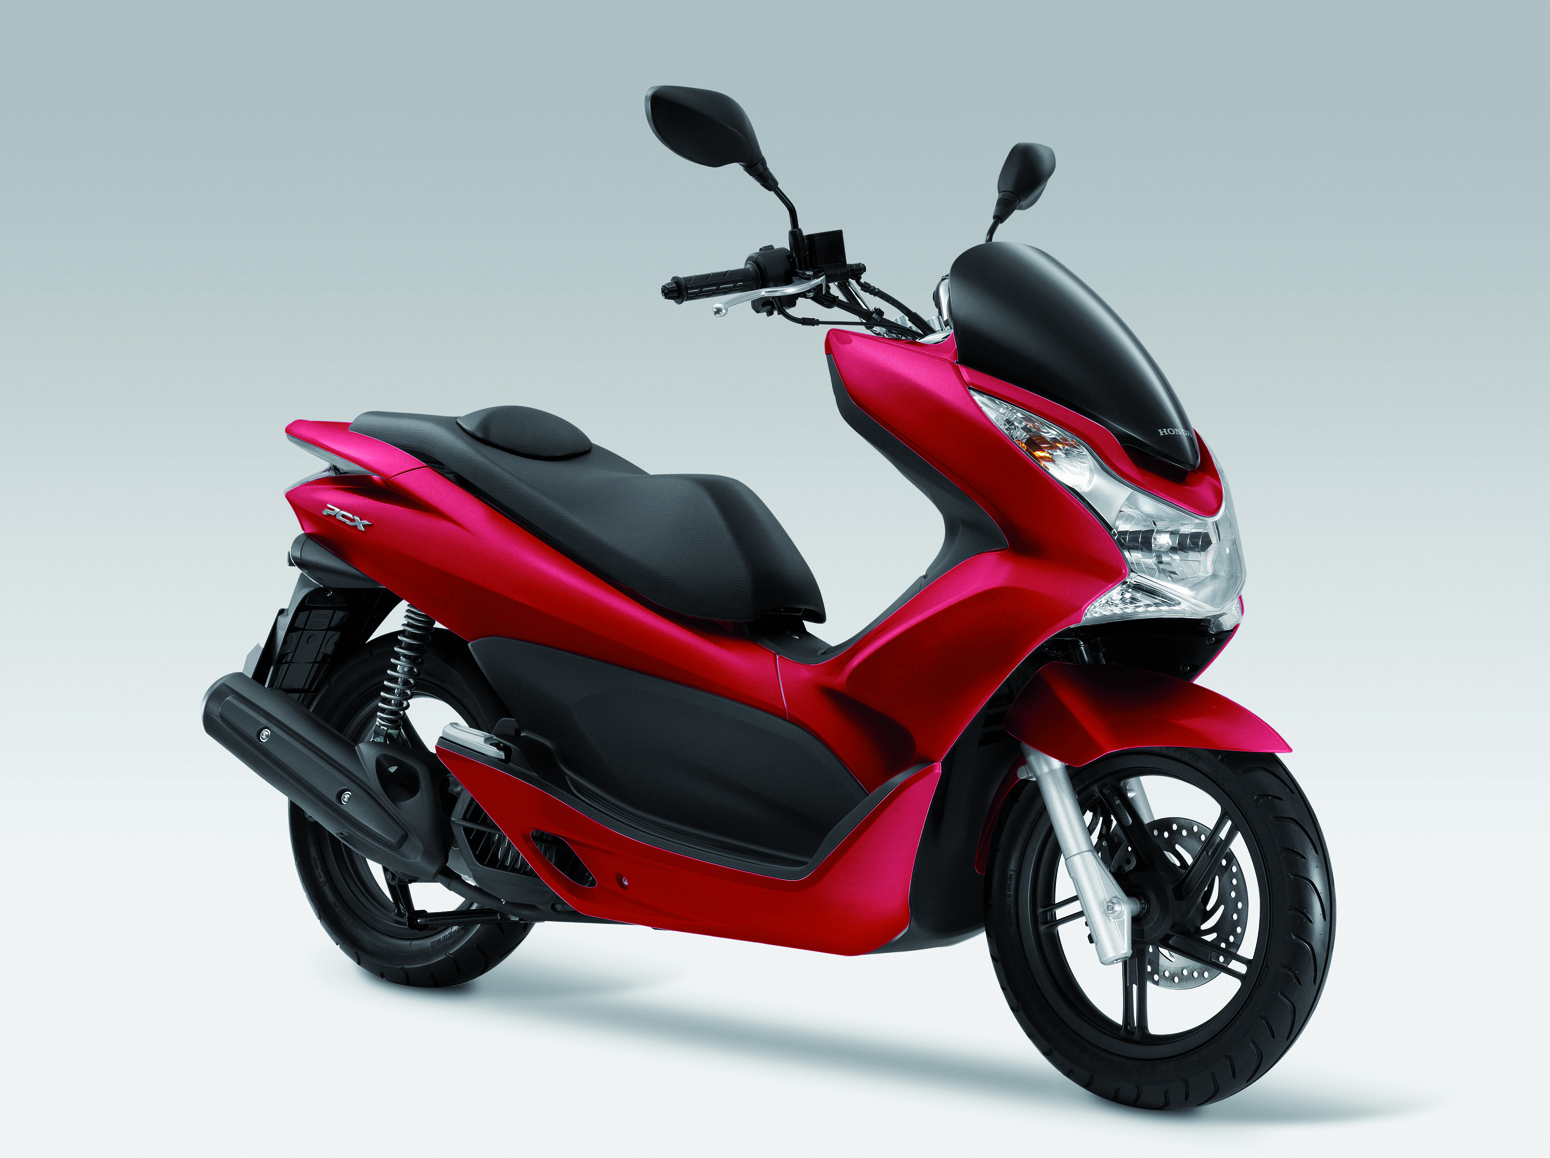 honda pcx 150 a modernidade aqui autoentusiastas classic 2008 2014. Black Bedroom Furniture Sets. Home Design Ideas